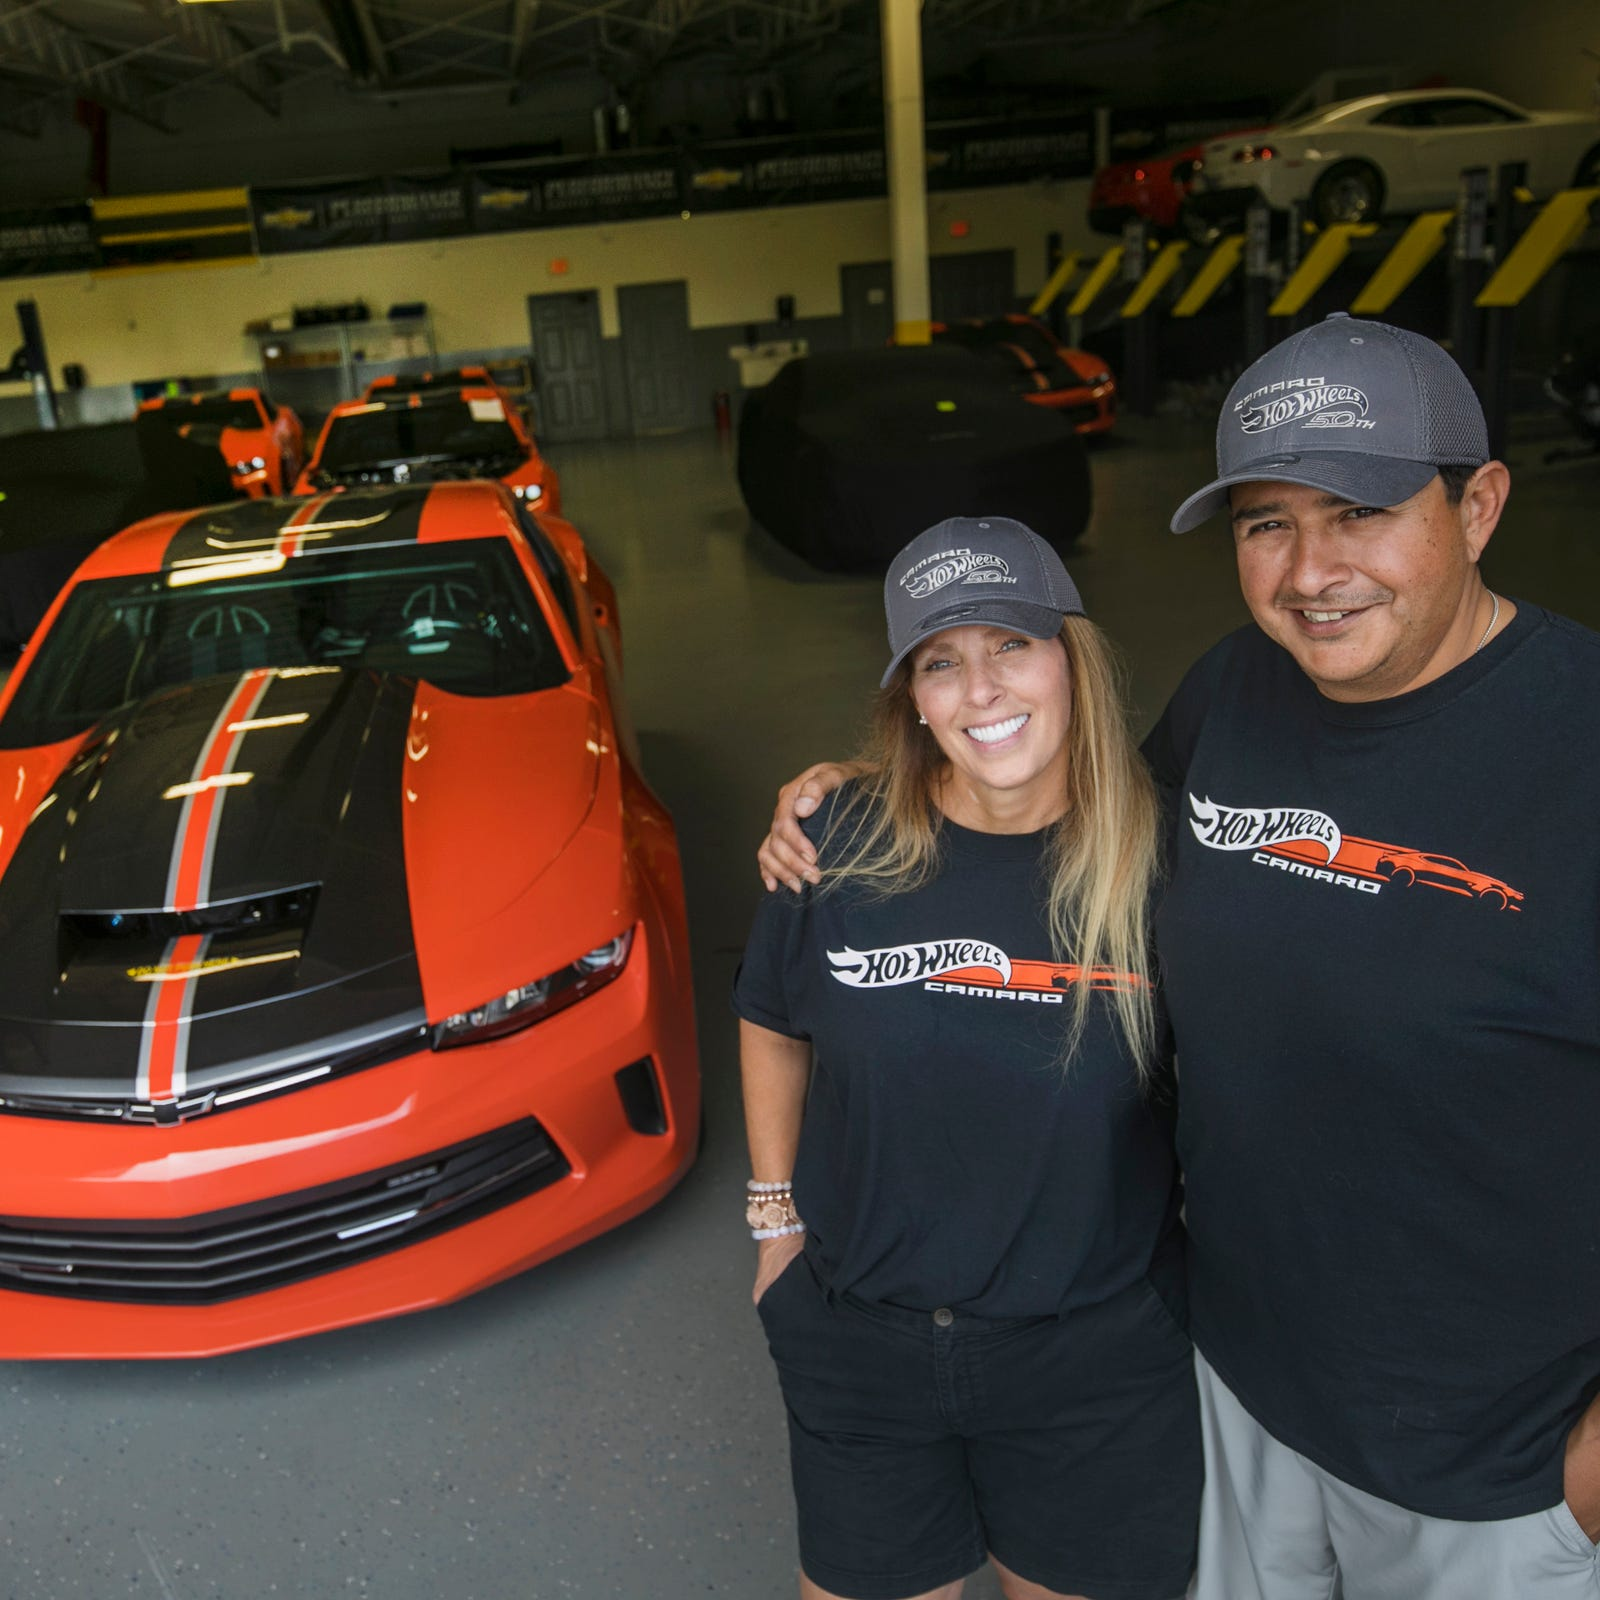 Cheryl Espinoza, 46, left, and her husband Allen Espinoza, 48, both of Kingsbury, Texas, with the 2018 COPO Camaro Hot Wheels Edition that they are picking up at the factory in Oxford on Friday, Sept. 14, 2018.